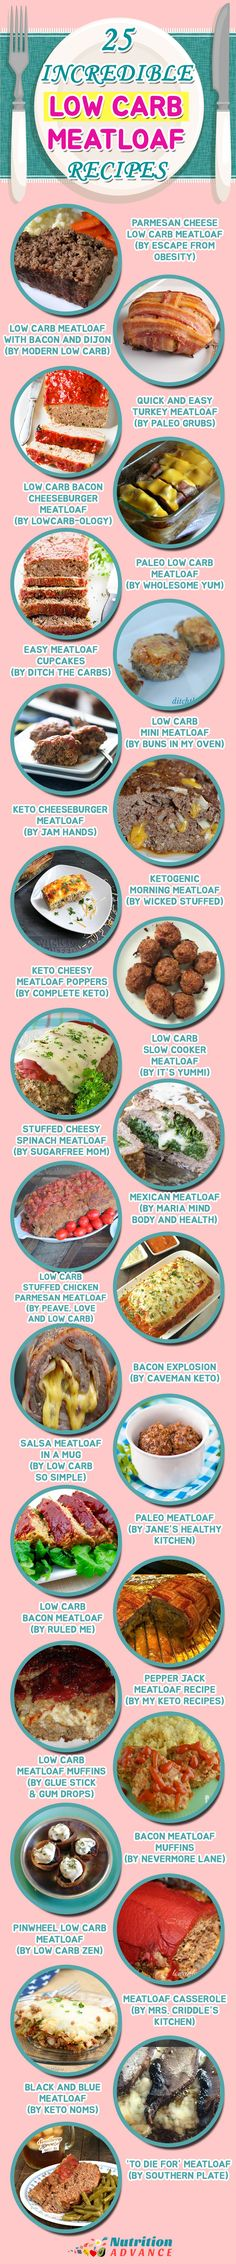 25 Incredible Low Carb Meatloaf Recipes - Here is a round-up of some of the very best meatloaf recipes around the Internet. Whether you're looking for a cheese meatloaf, one made from chicken or turkey, or even mini meatloaf cupcakes or muffins... the choice is definitely here! They are all suitable for low carb (LCHF) diets and the majority are also fine for paleo and keto! All these recipes make a great meal or a tasty snack.